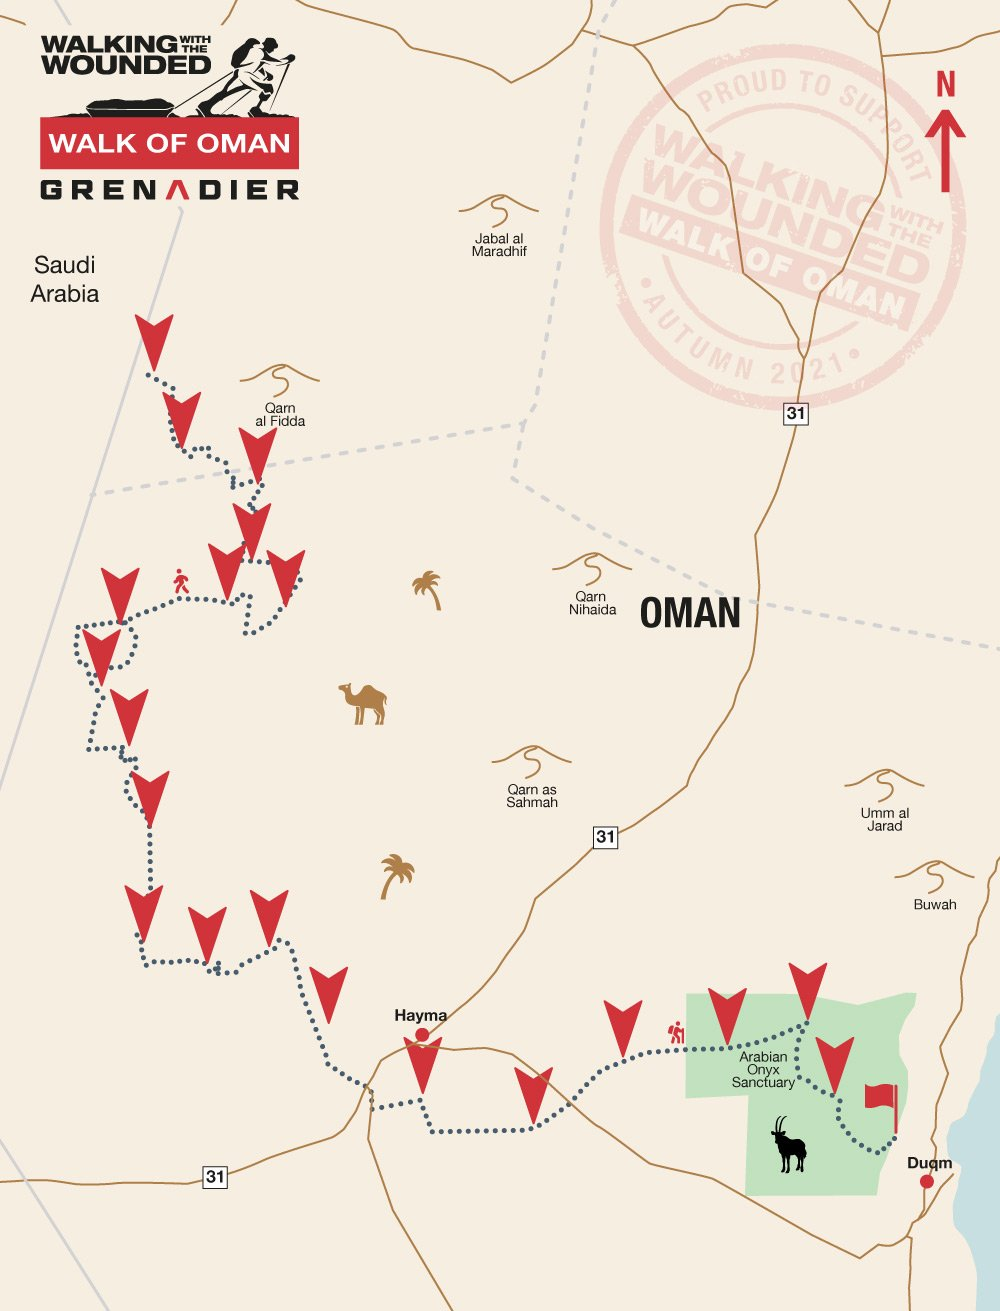 Walk of Oman route map